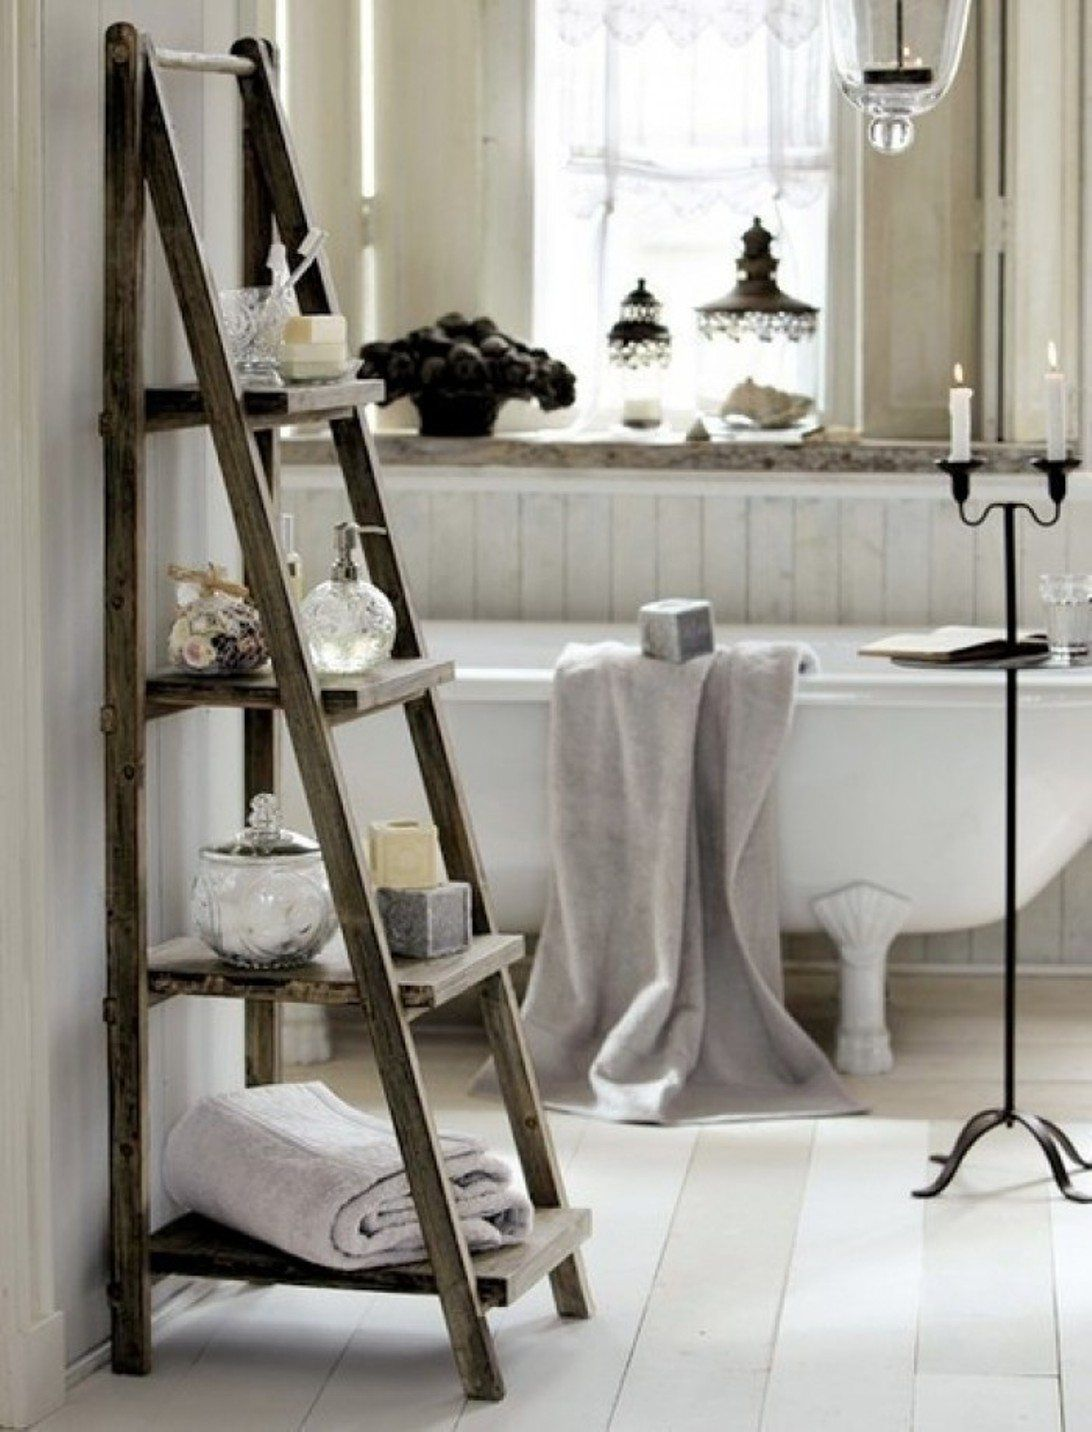 Standing Wooden Ladder Shelf Bathroom Towel Rack Ideas For Shabby Chic Good Racks